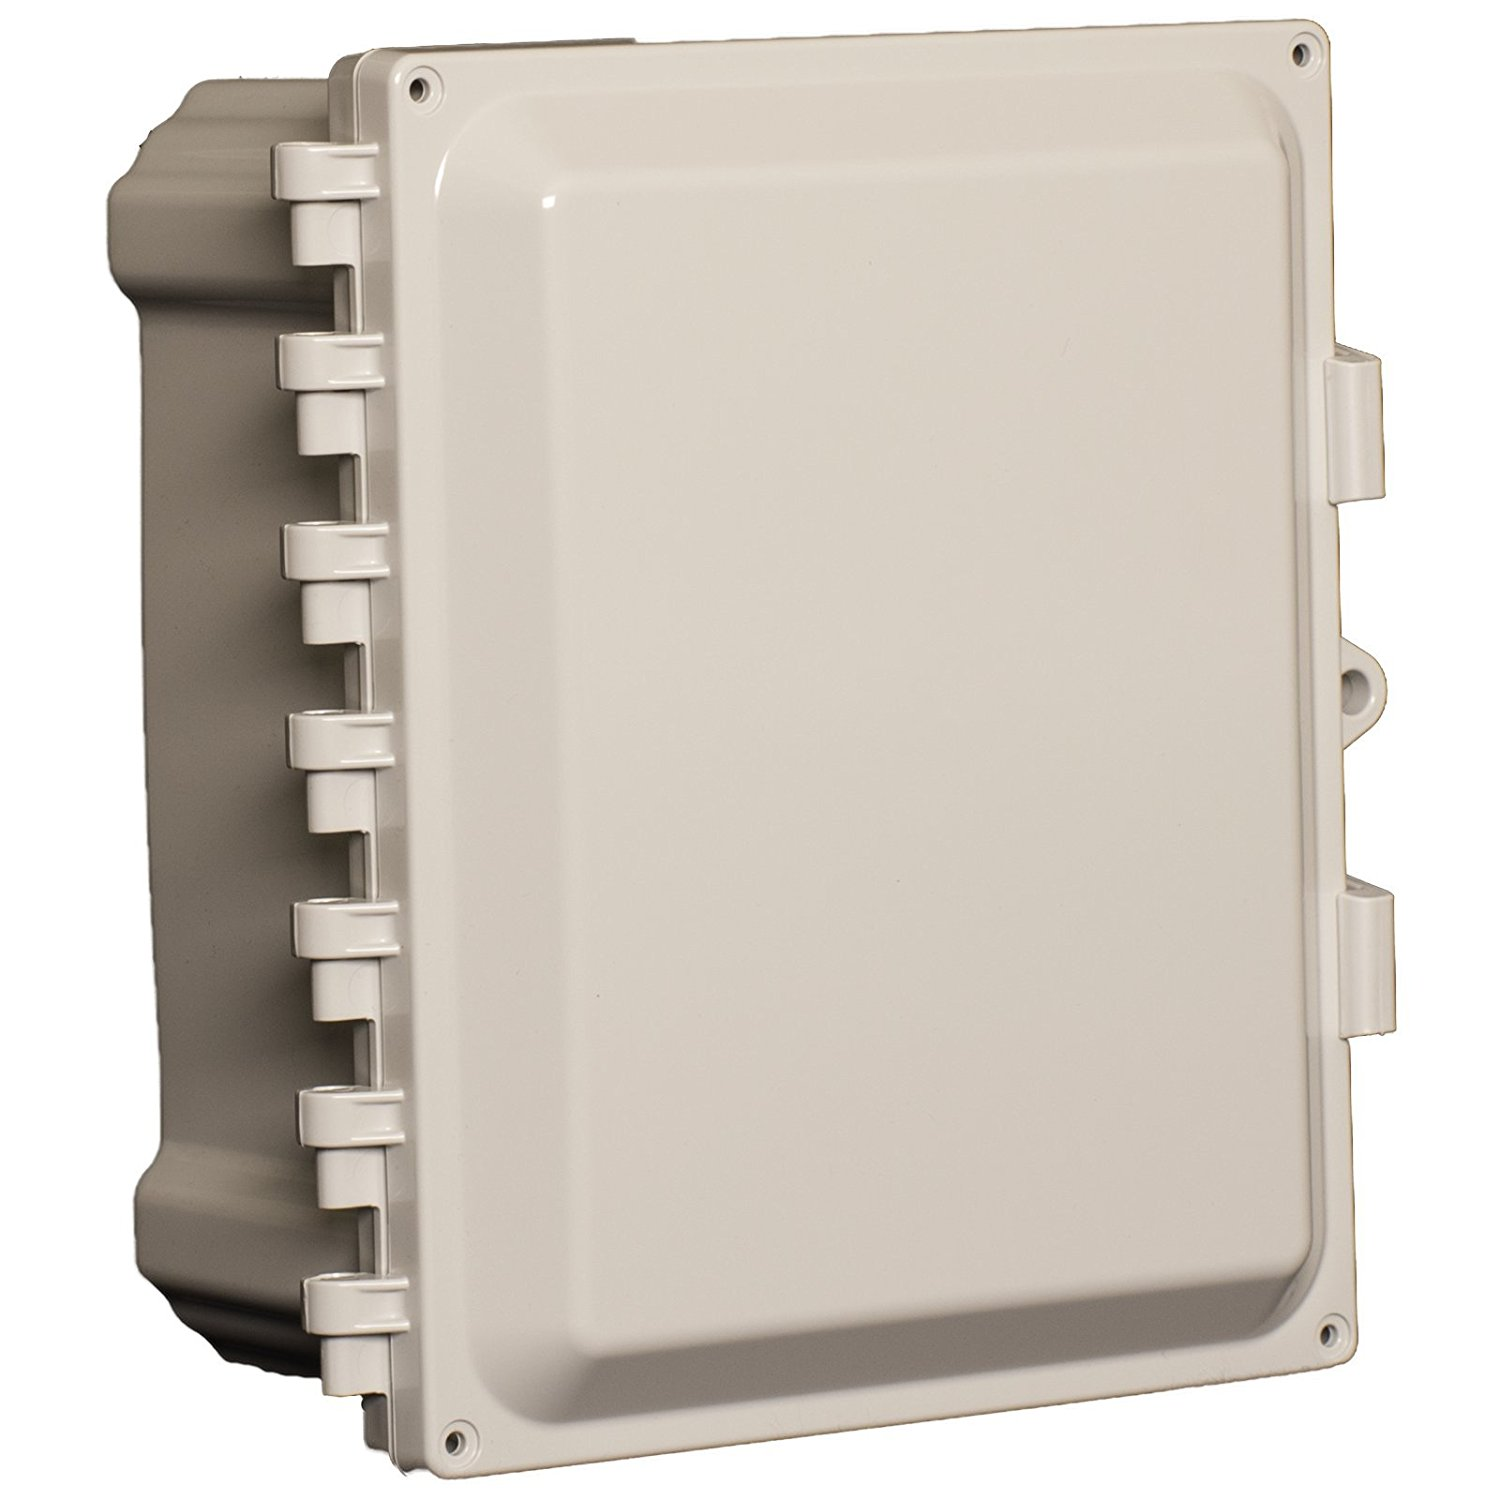 Allied Moulded AMP1084NLF Polyline Series Polycarbonate JIC Size Junction Box Nonmetalic Snap Latch with Polycarbonate Flange and Hinged Opaque Cover